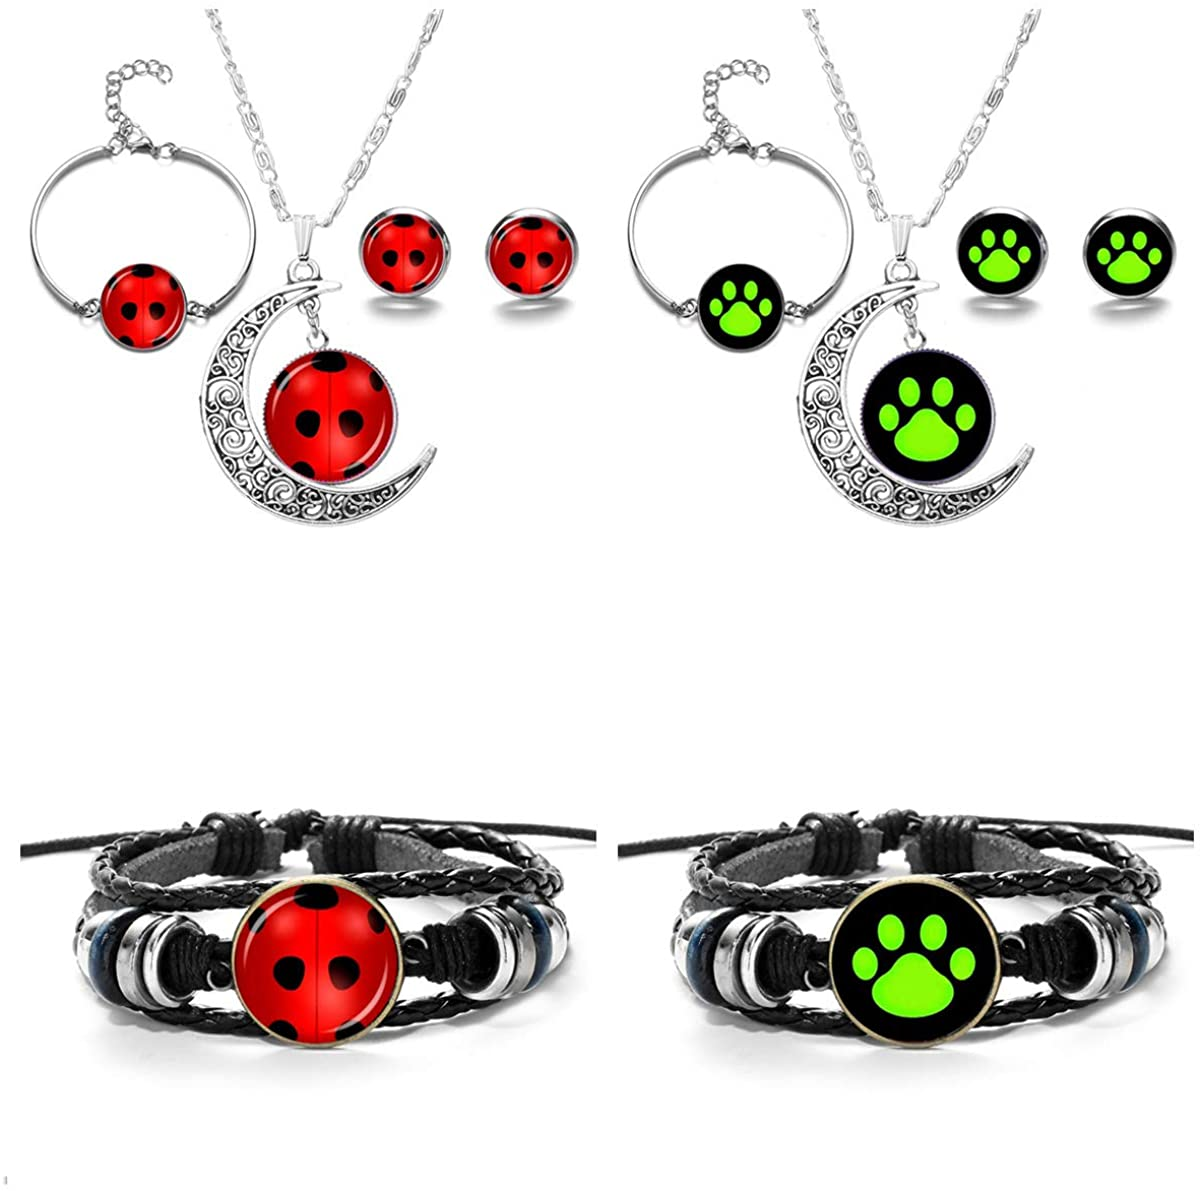 JOJO & LIN 8pcs/set Ladybug Pendant Necklace and Bracelet Earrings Set For Birthday Party Gift